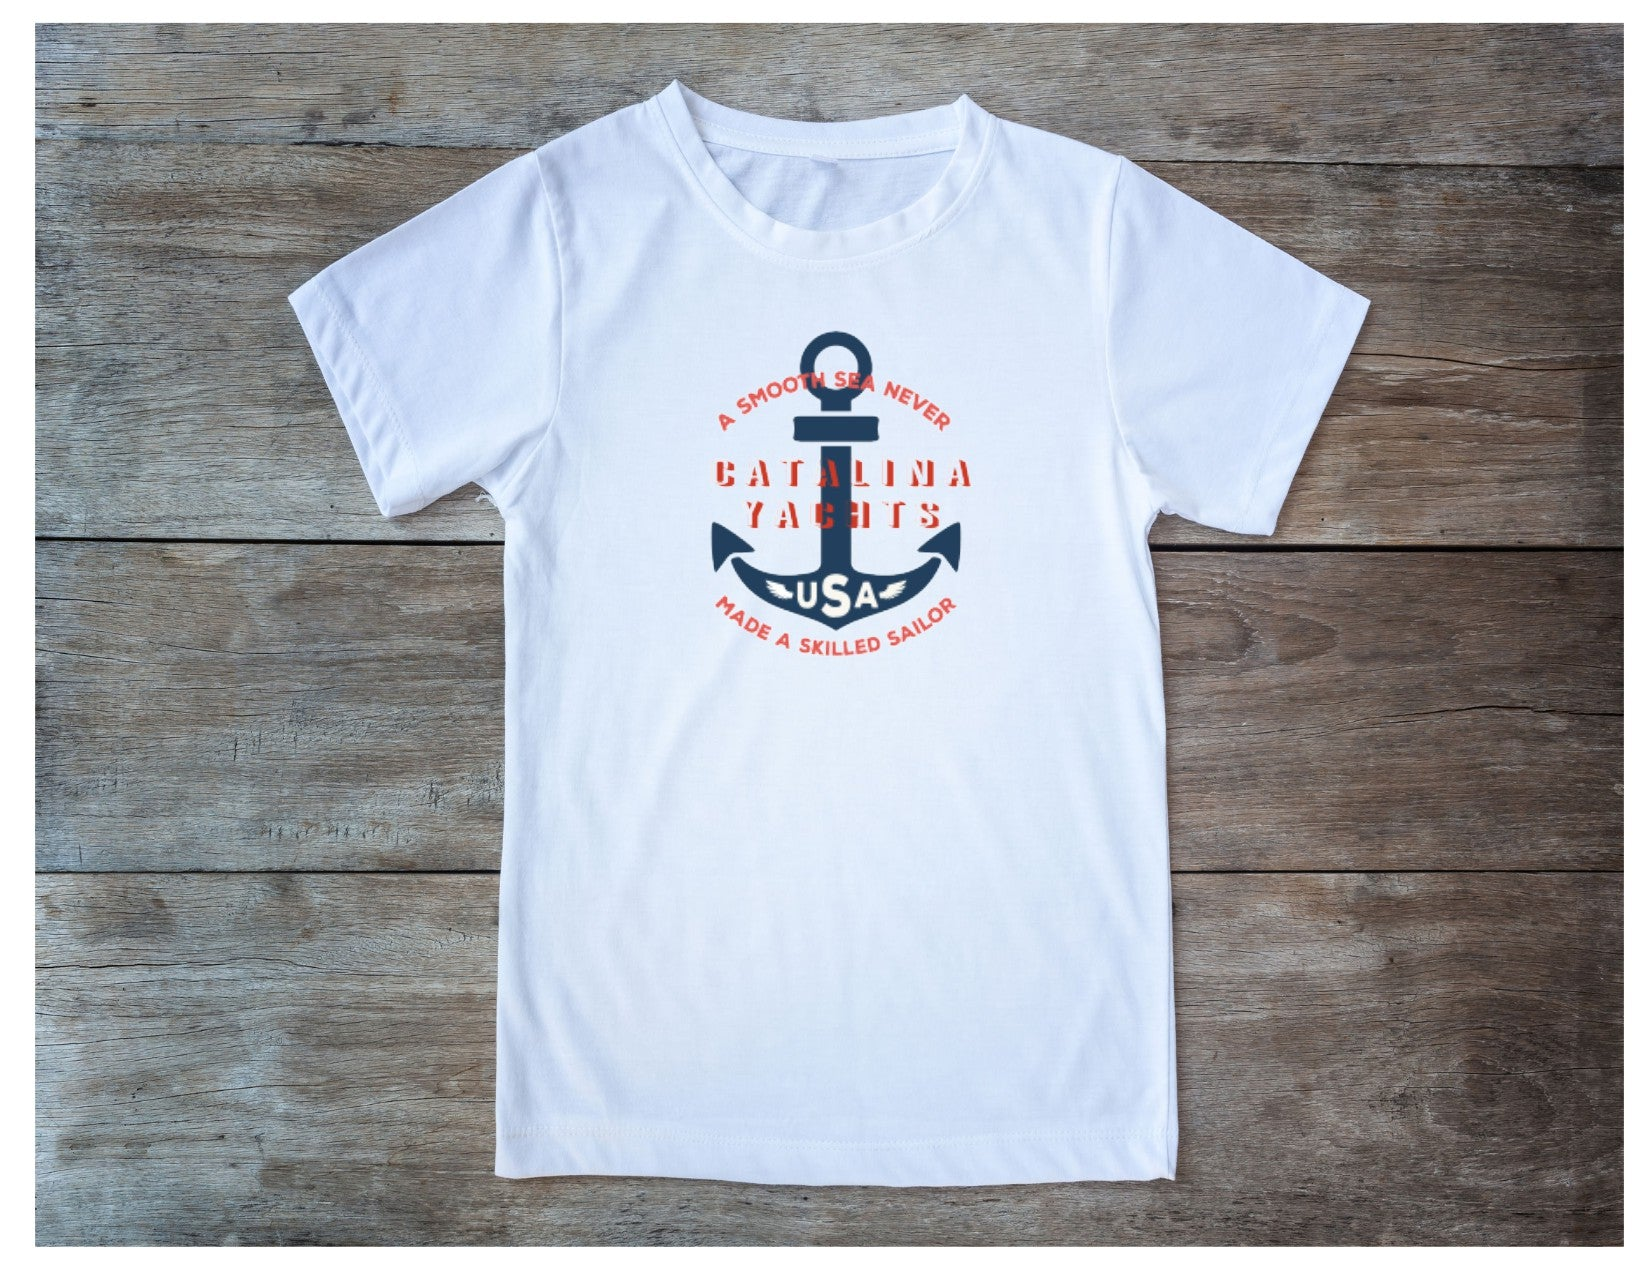 Catalina Skilled Sailor T-Shirt